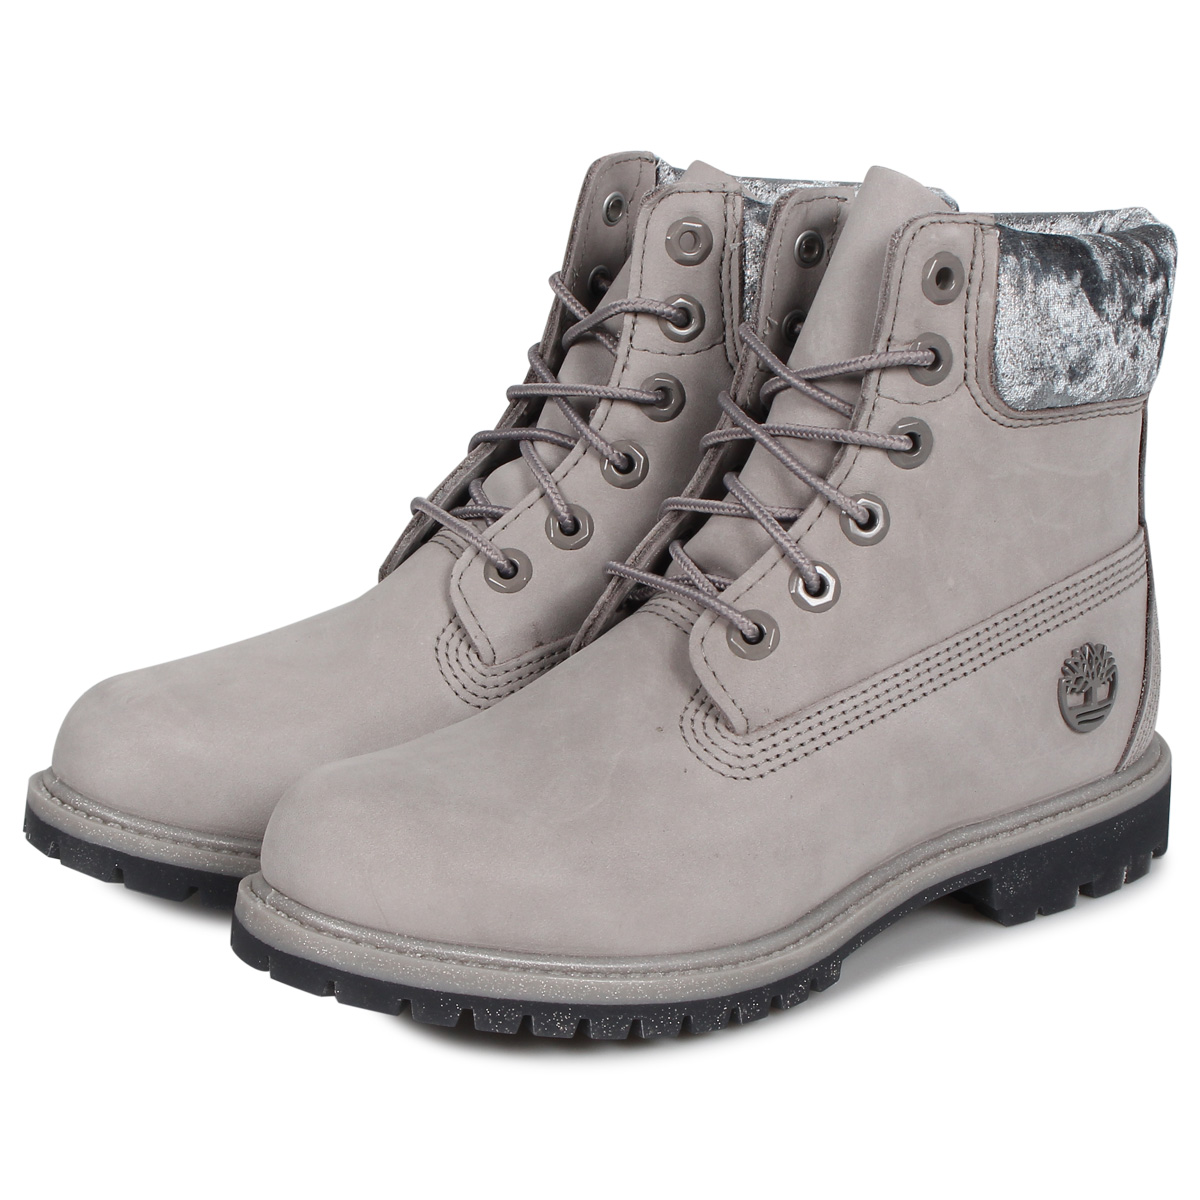 Bottes Femme Timberland 14 inch Premium Waterproof